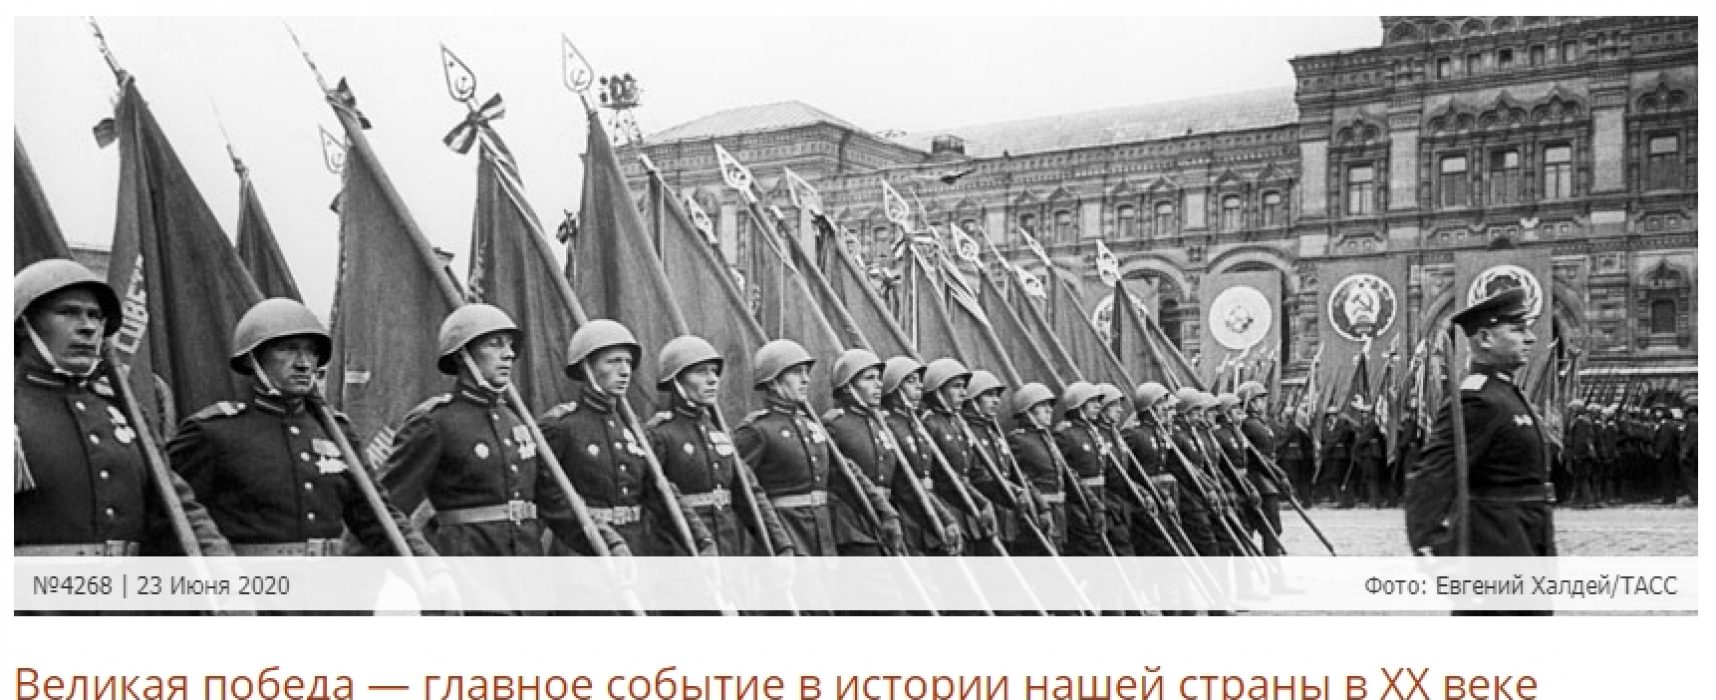 95 percent of Russians now say victory in 1945 was main event for Russia in the 20th century; 65 percent say It was most important one ever